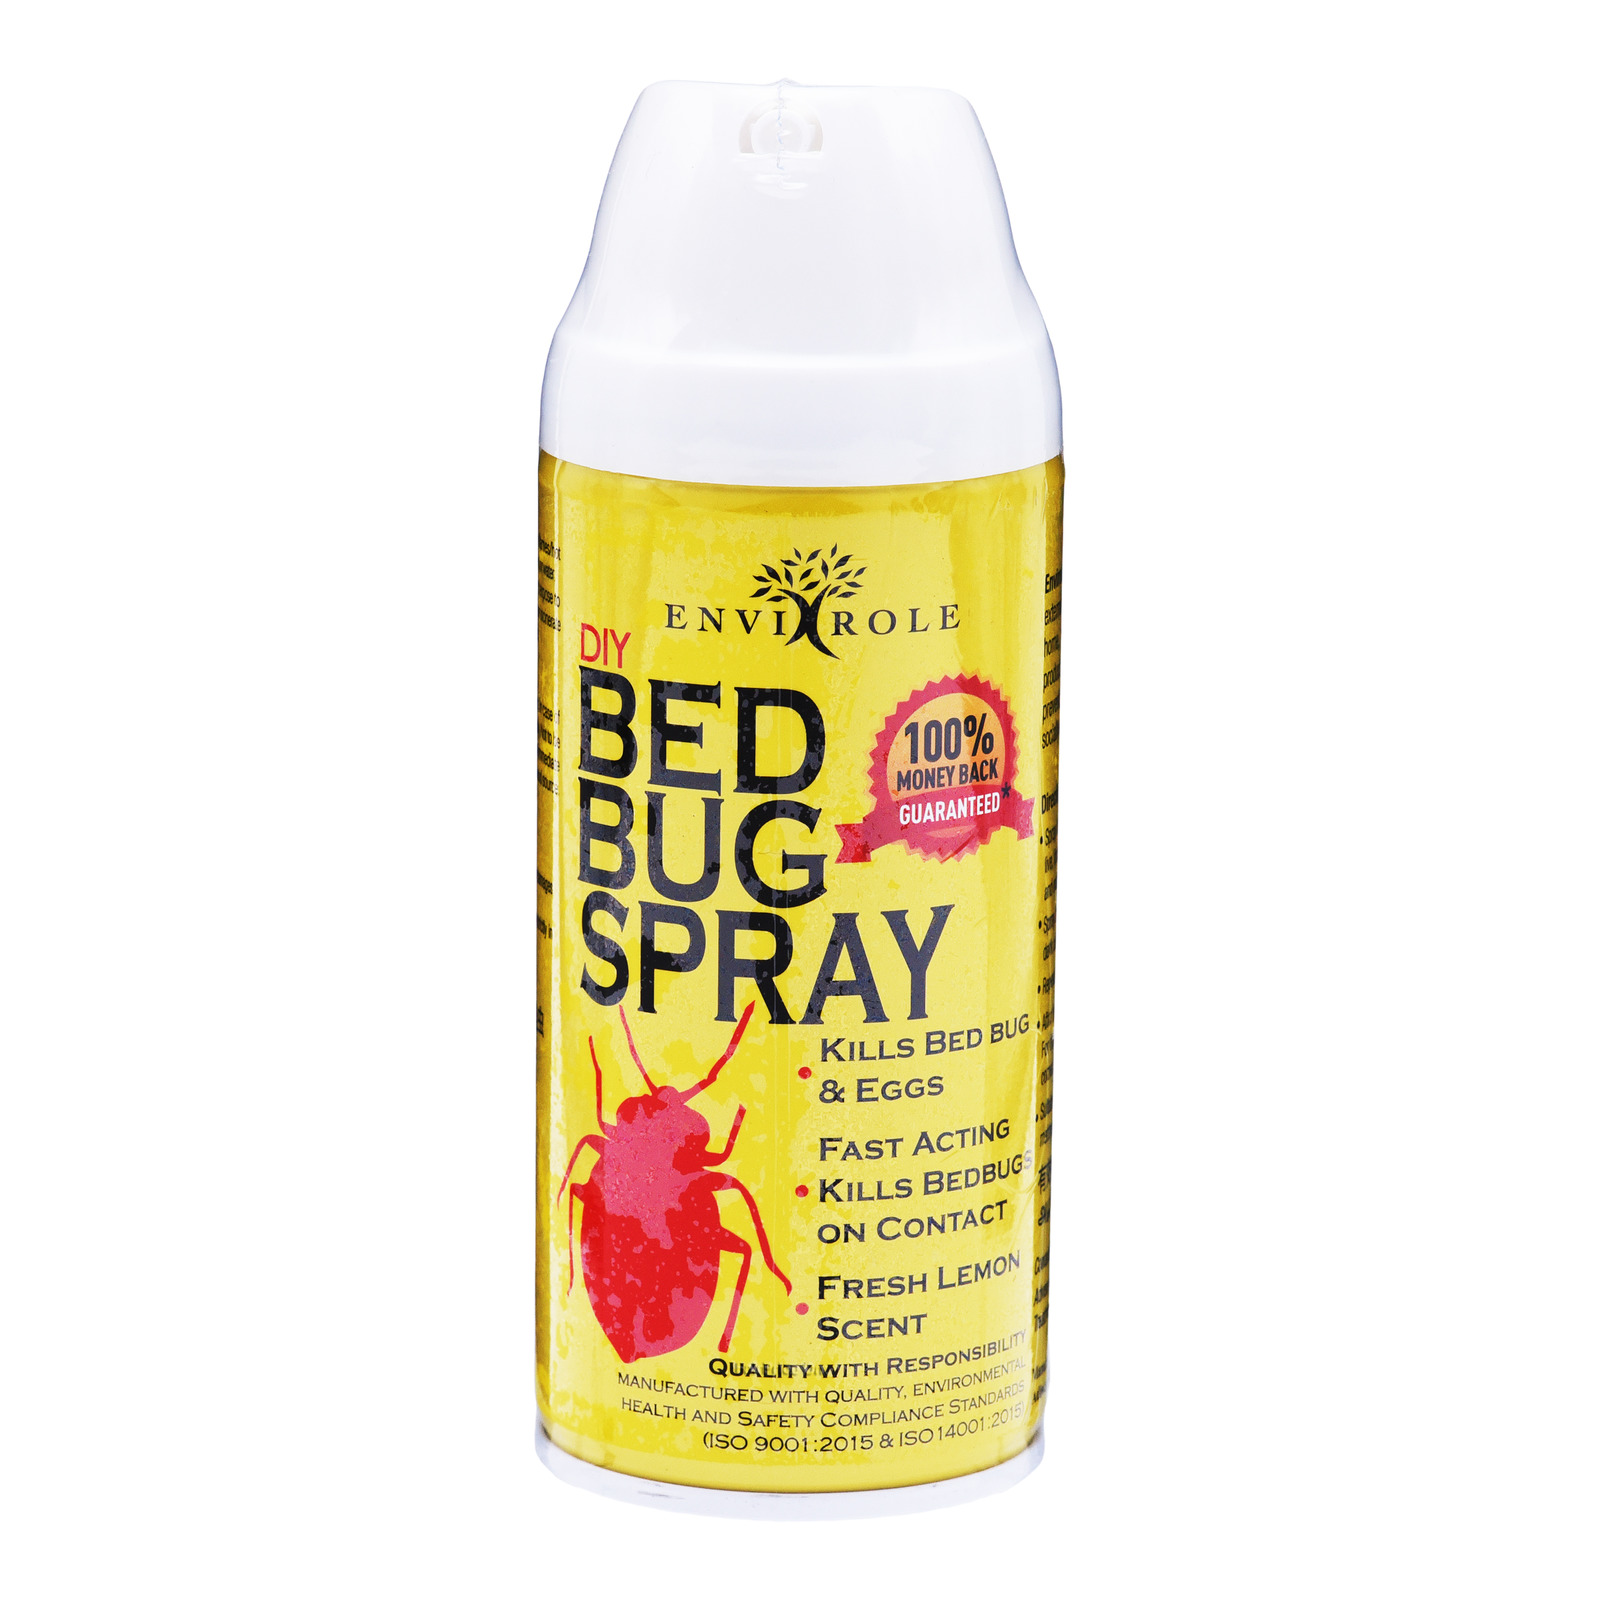 Envirole Bed Bug Aerosol Spray